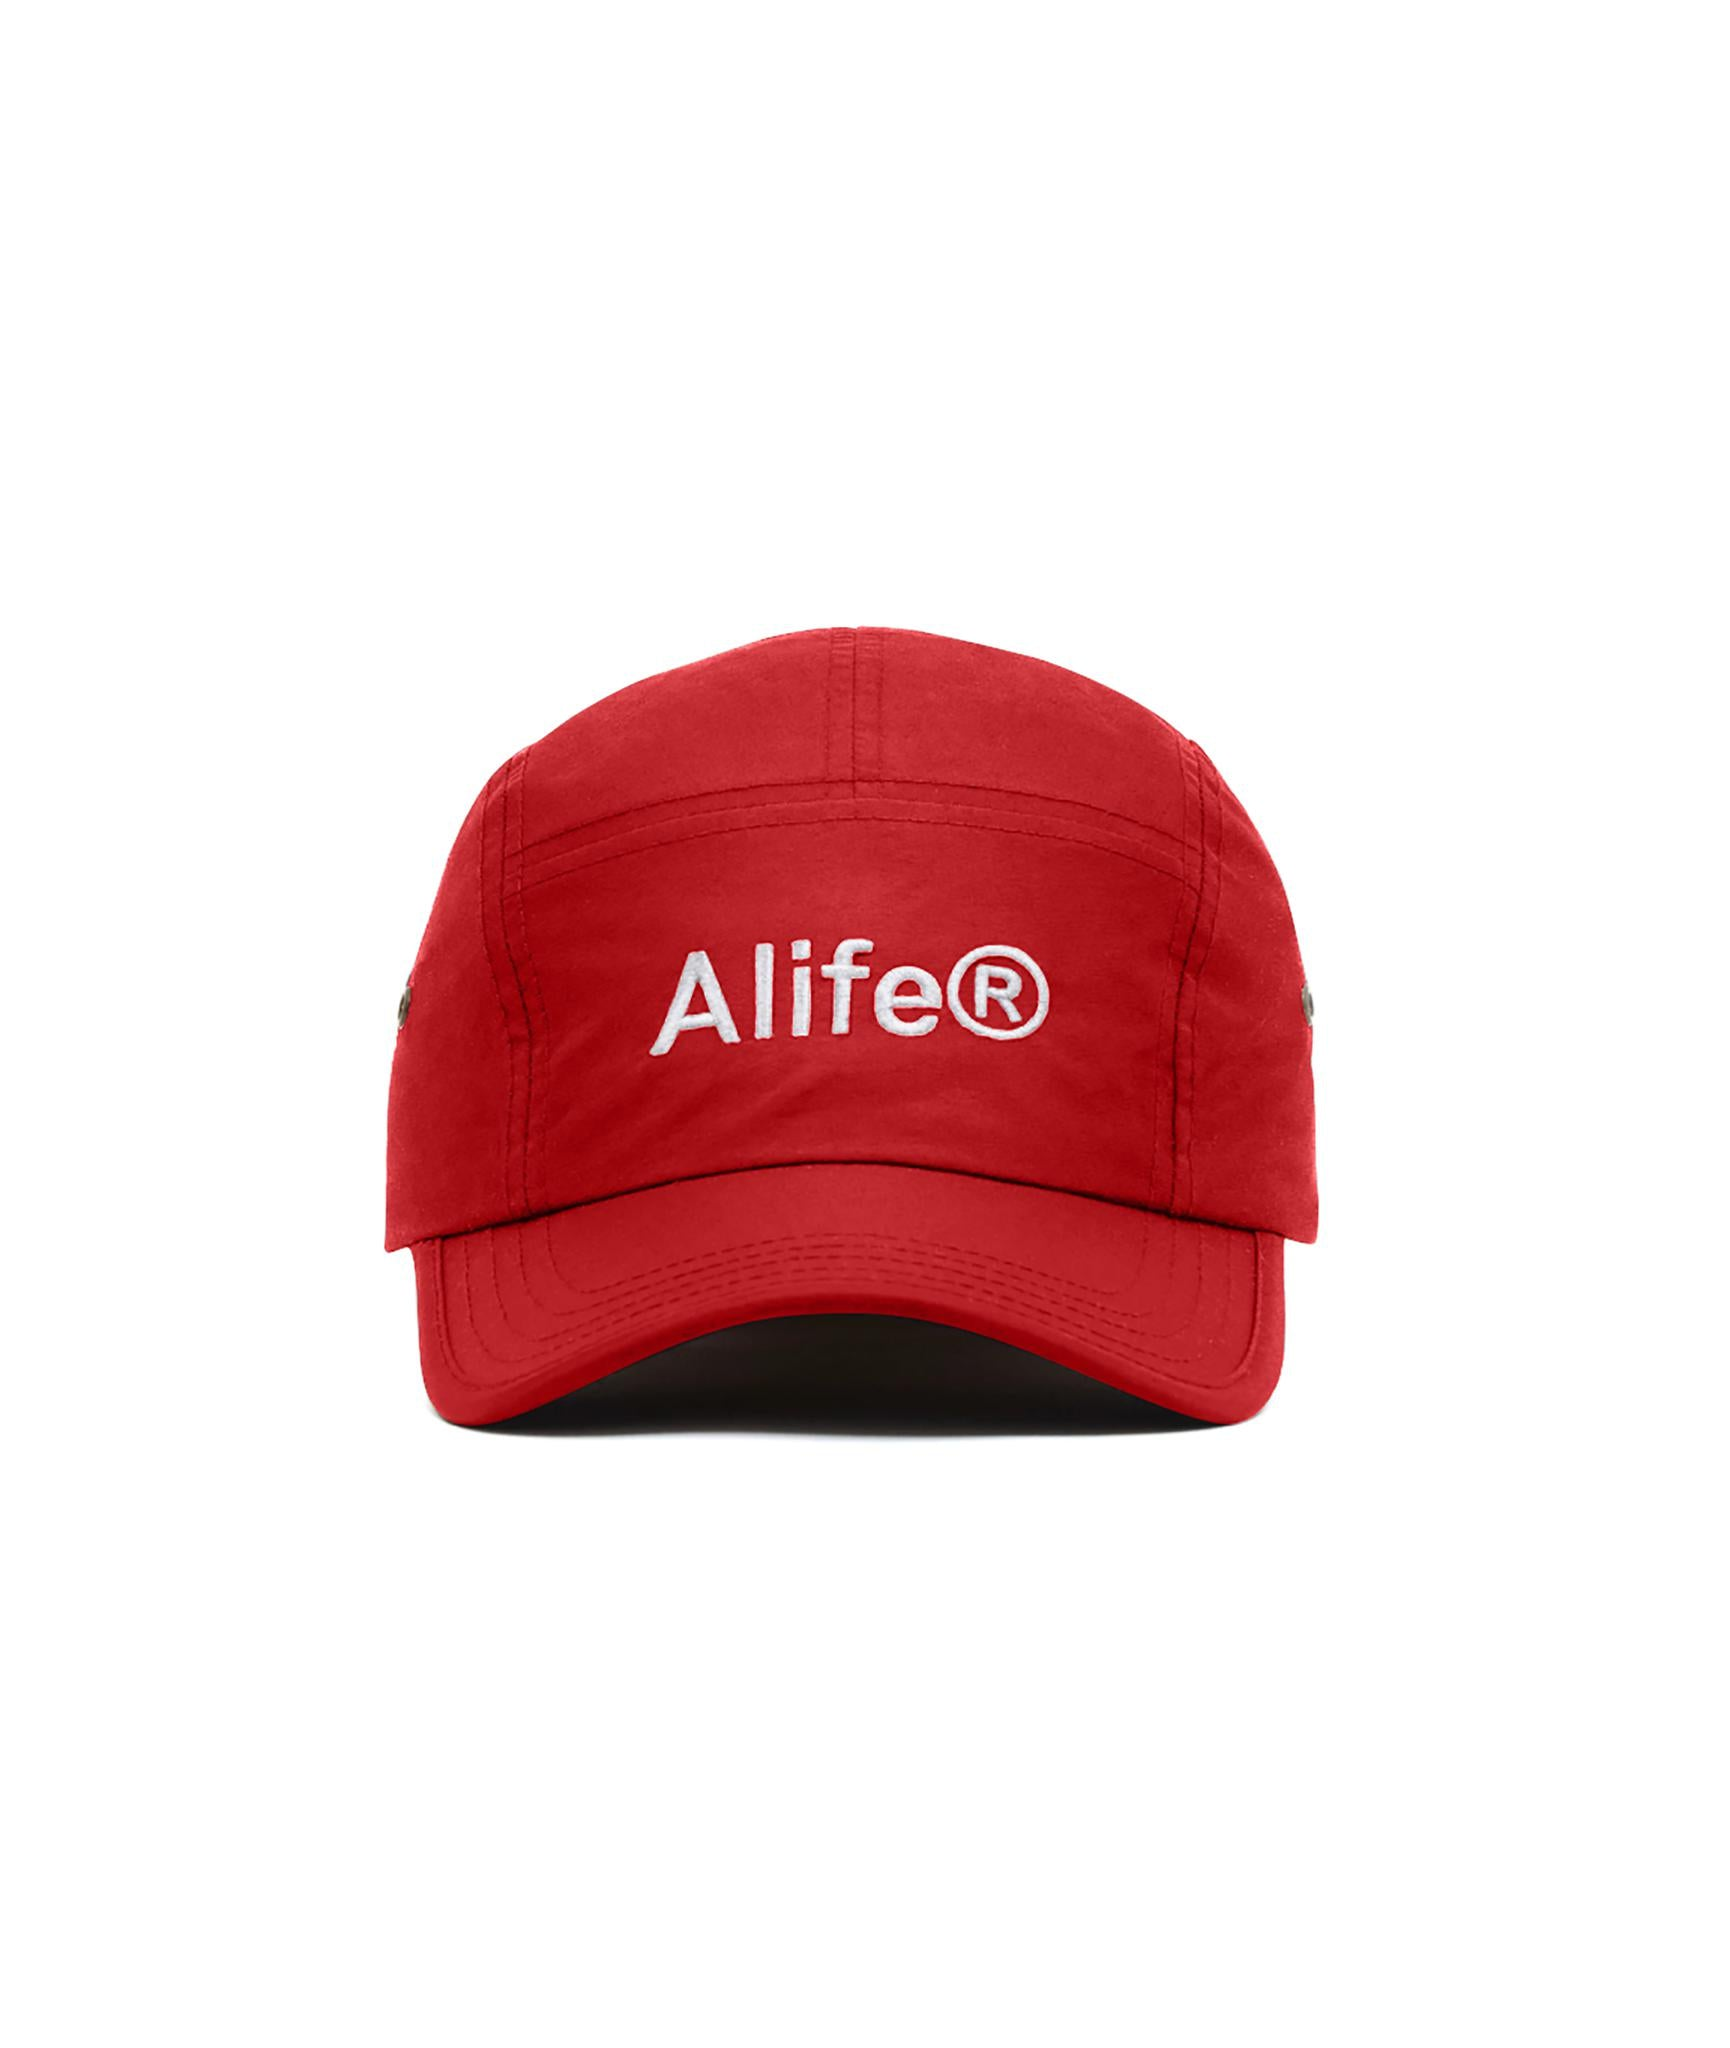 Alife Nylon 5-Panel Hat - Red